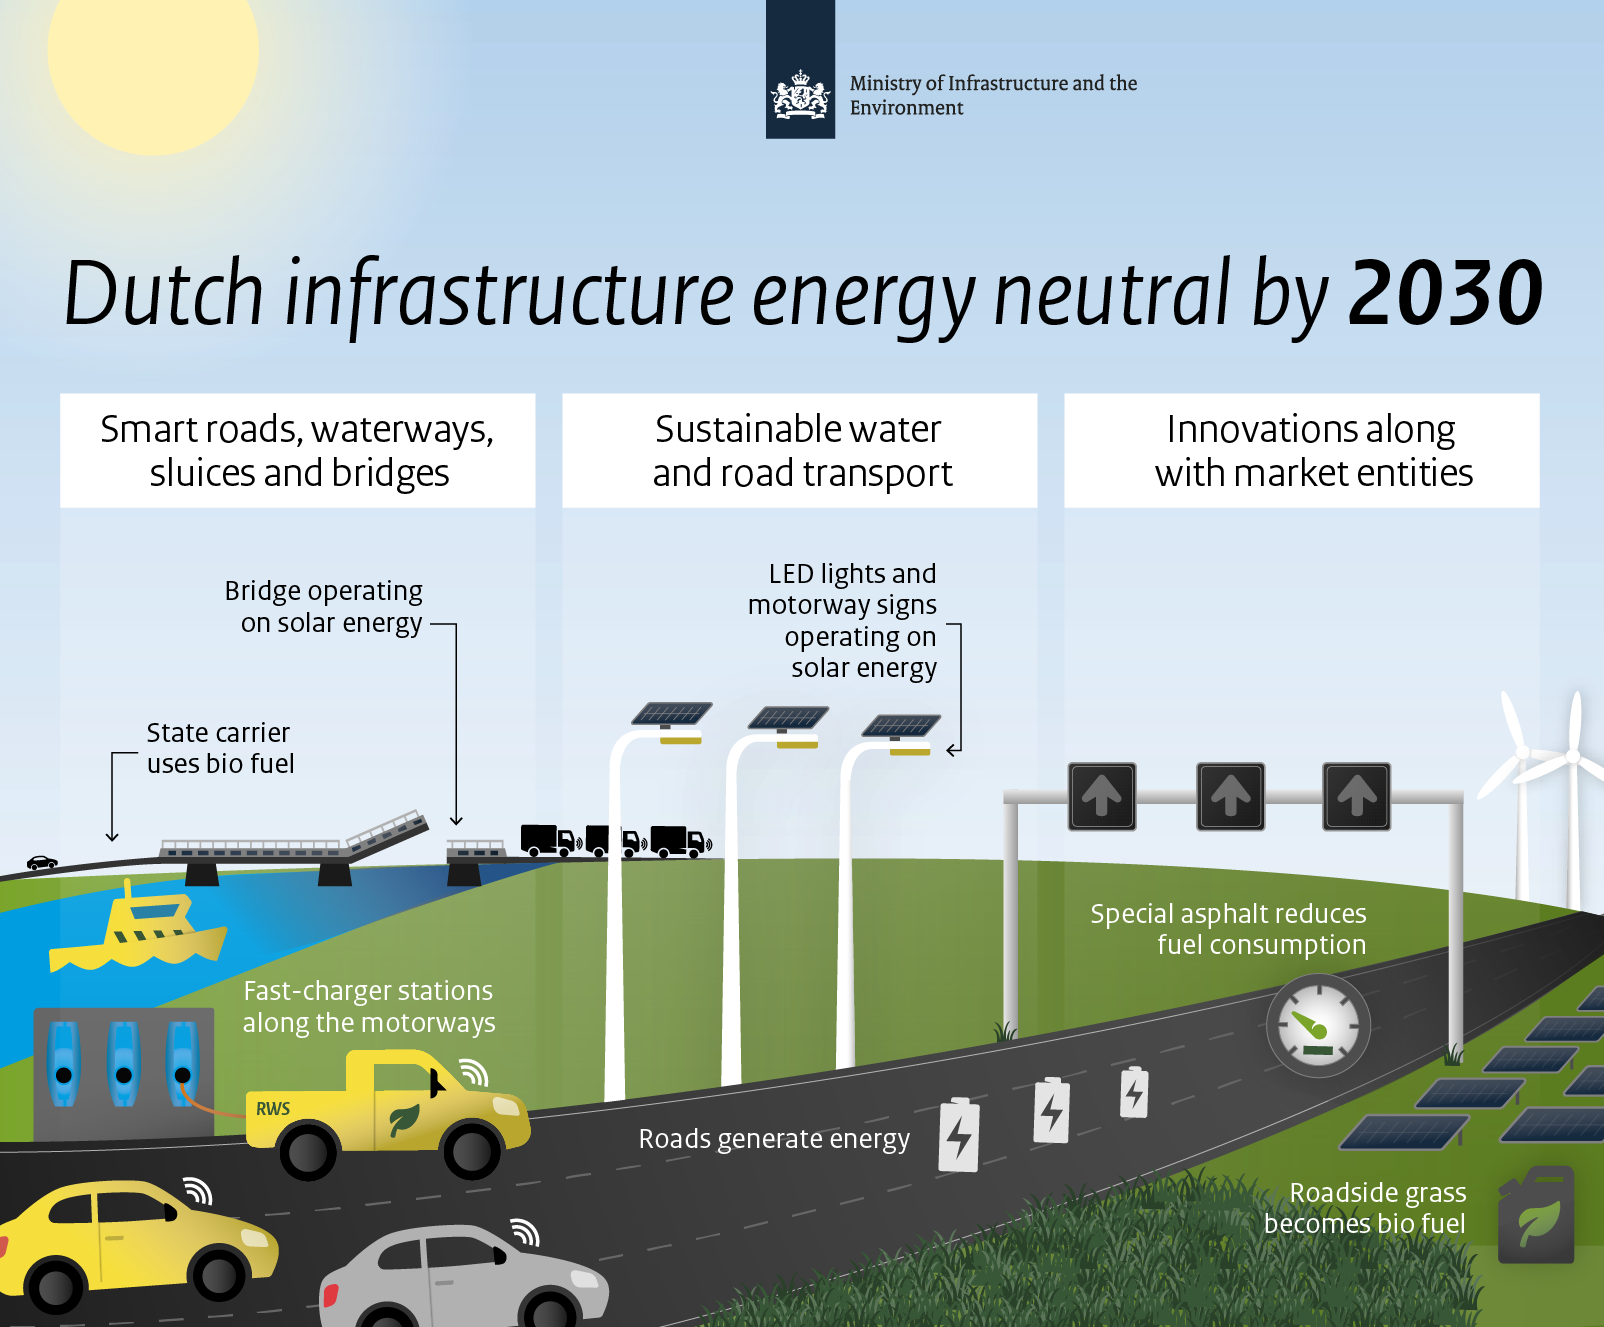 Dutch infrastructure targets energy neutrality